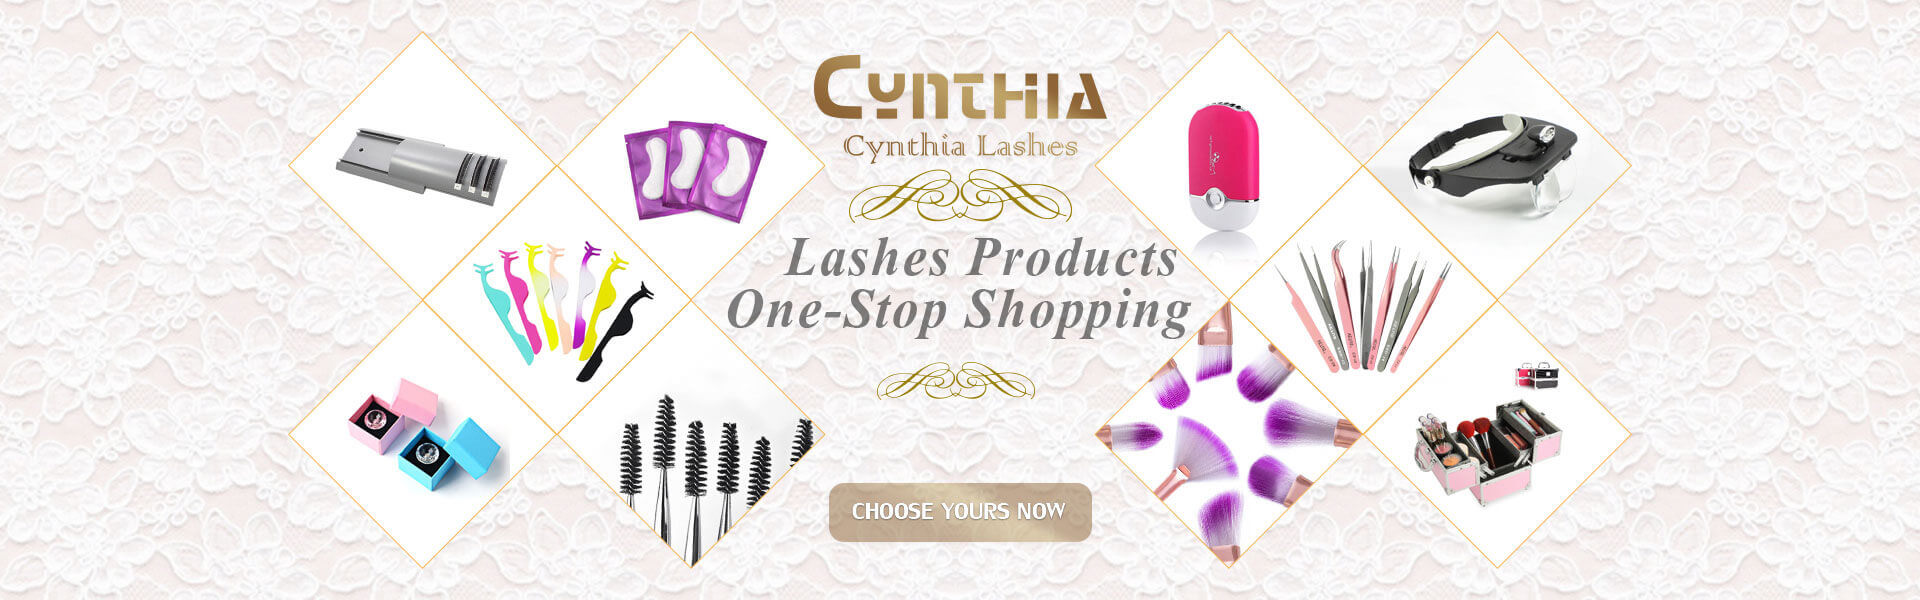 Eyelashes-tweezers-and-accessories-banner